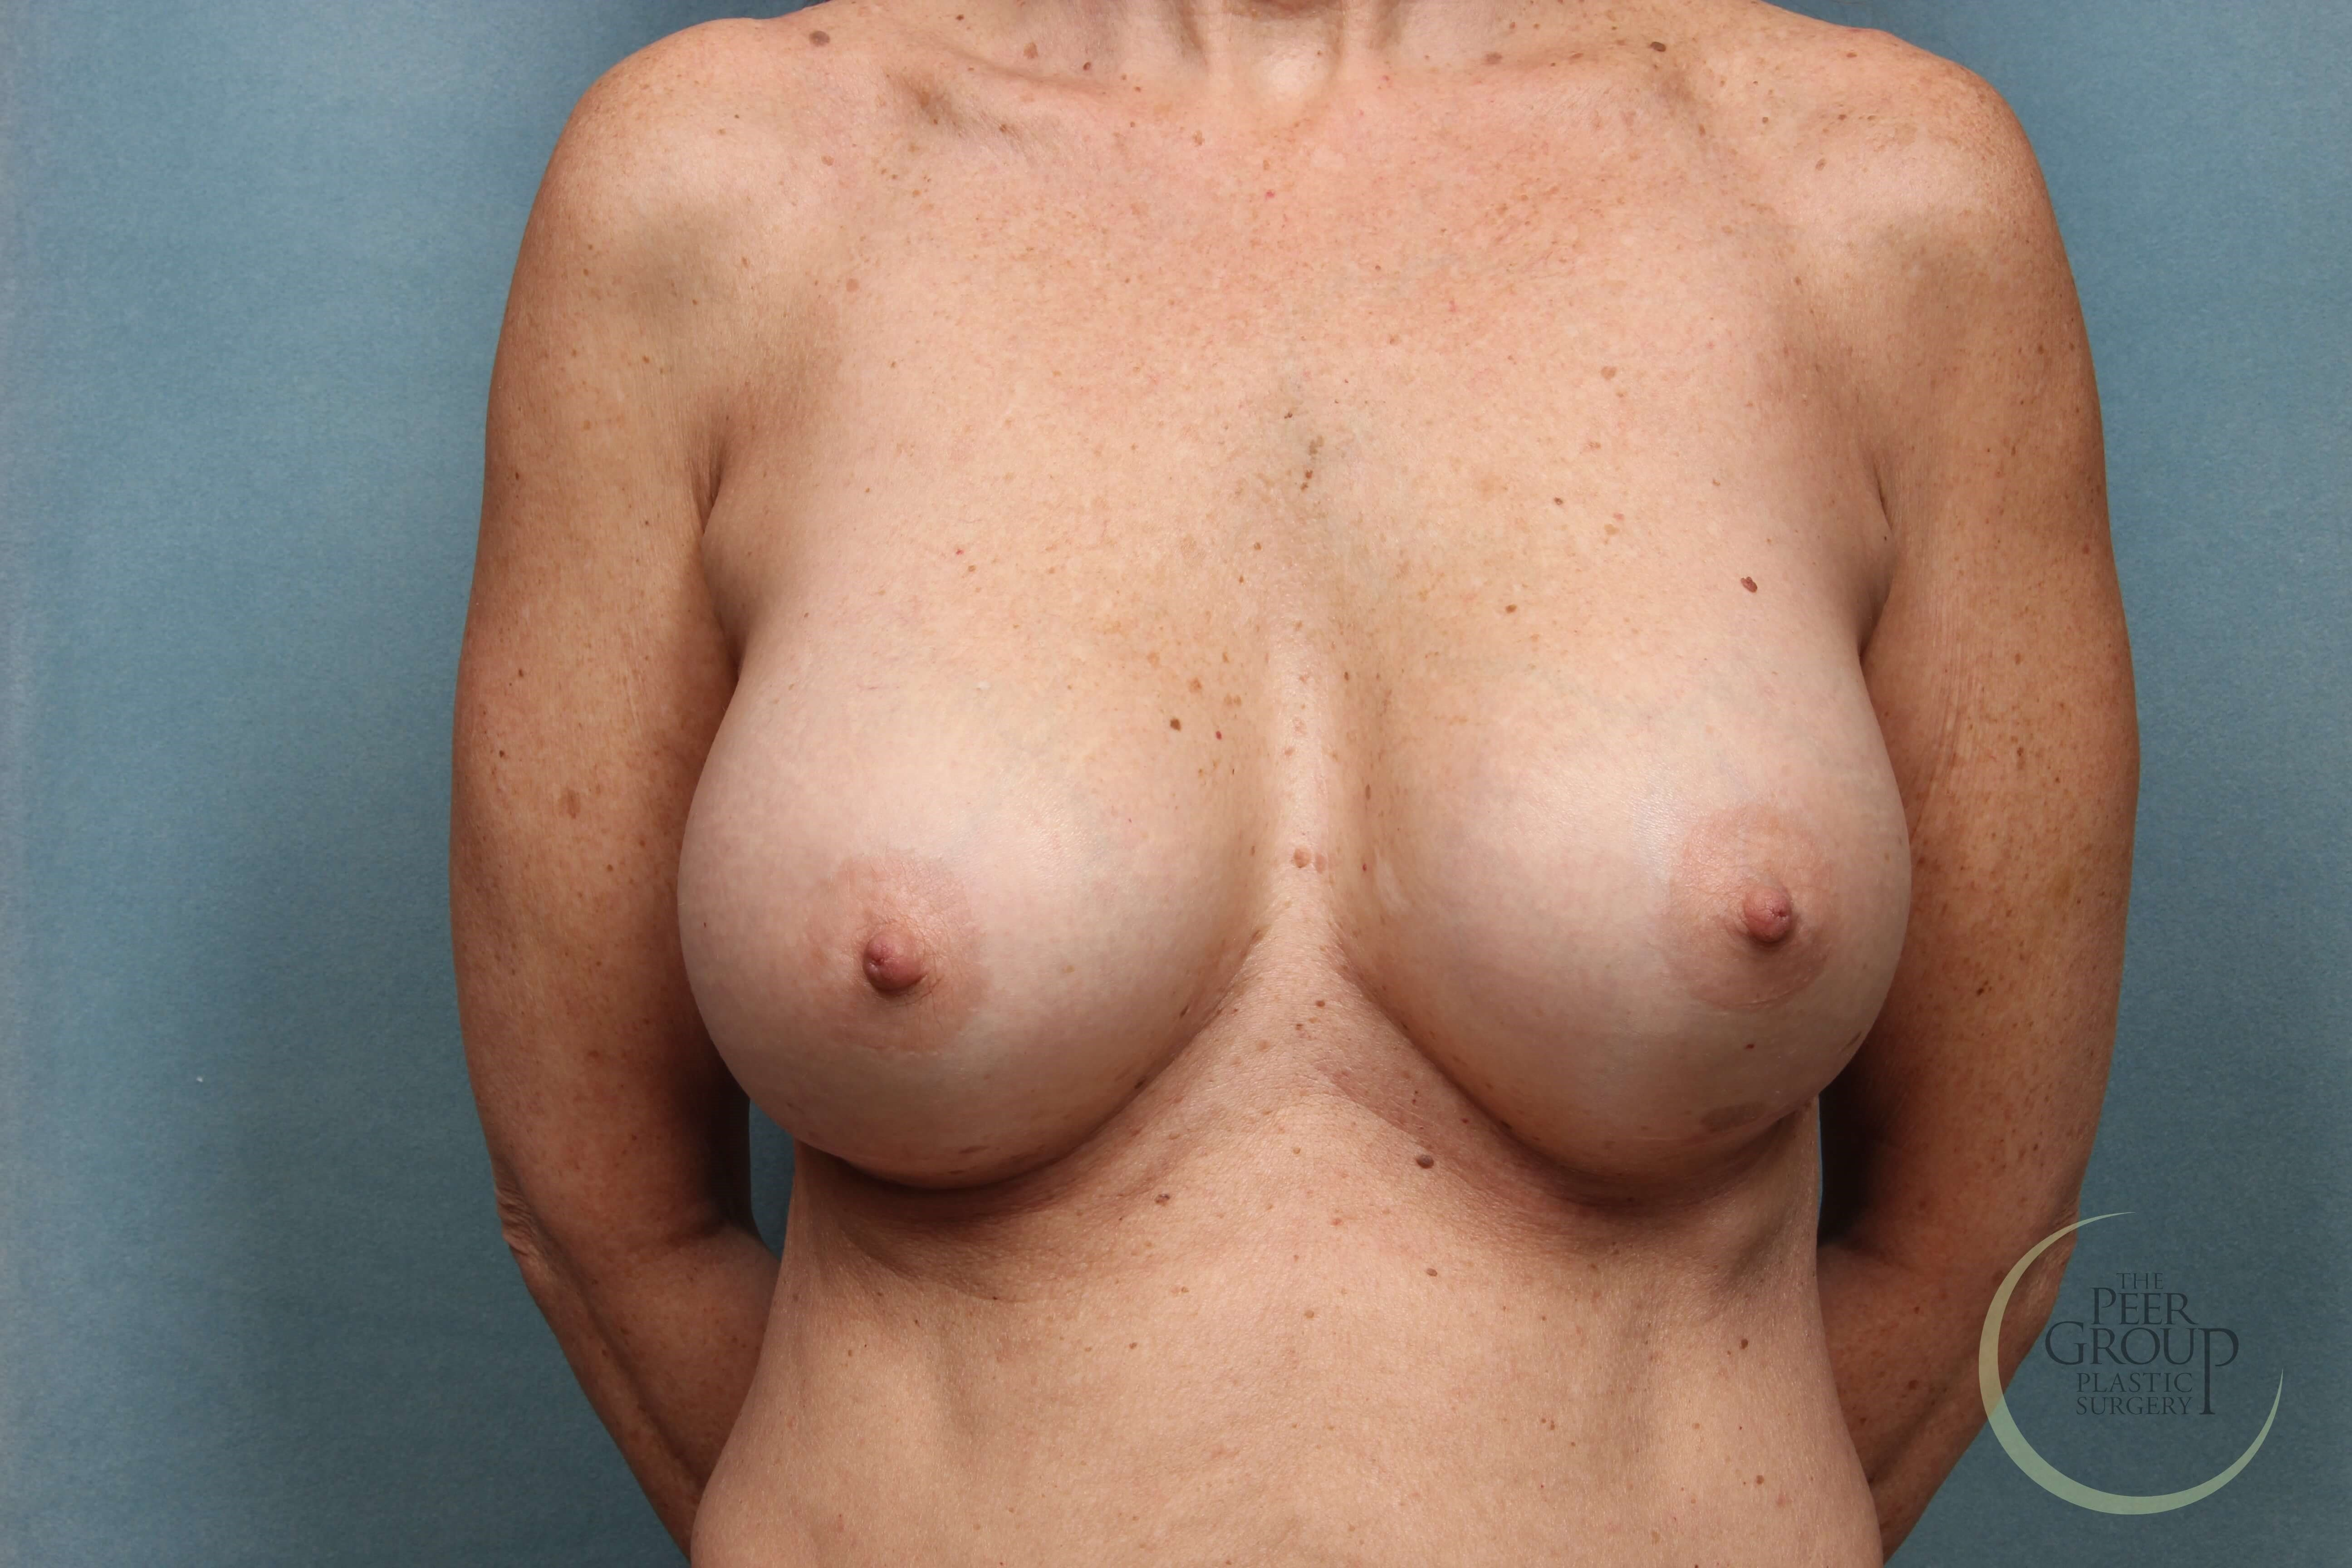 New Jersey Breast Implants D Cup After